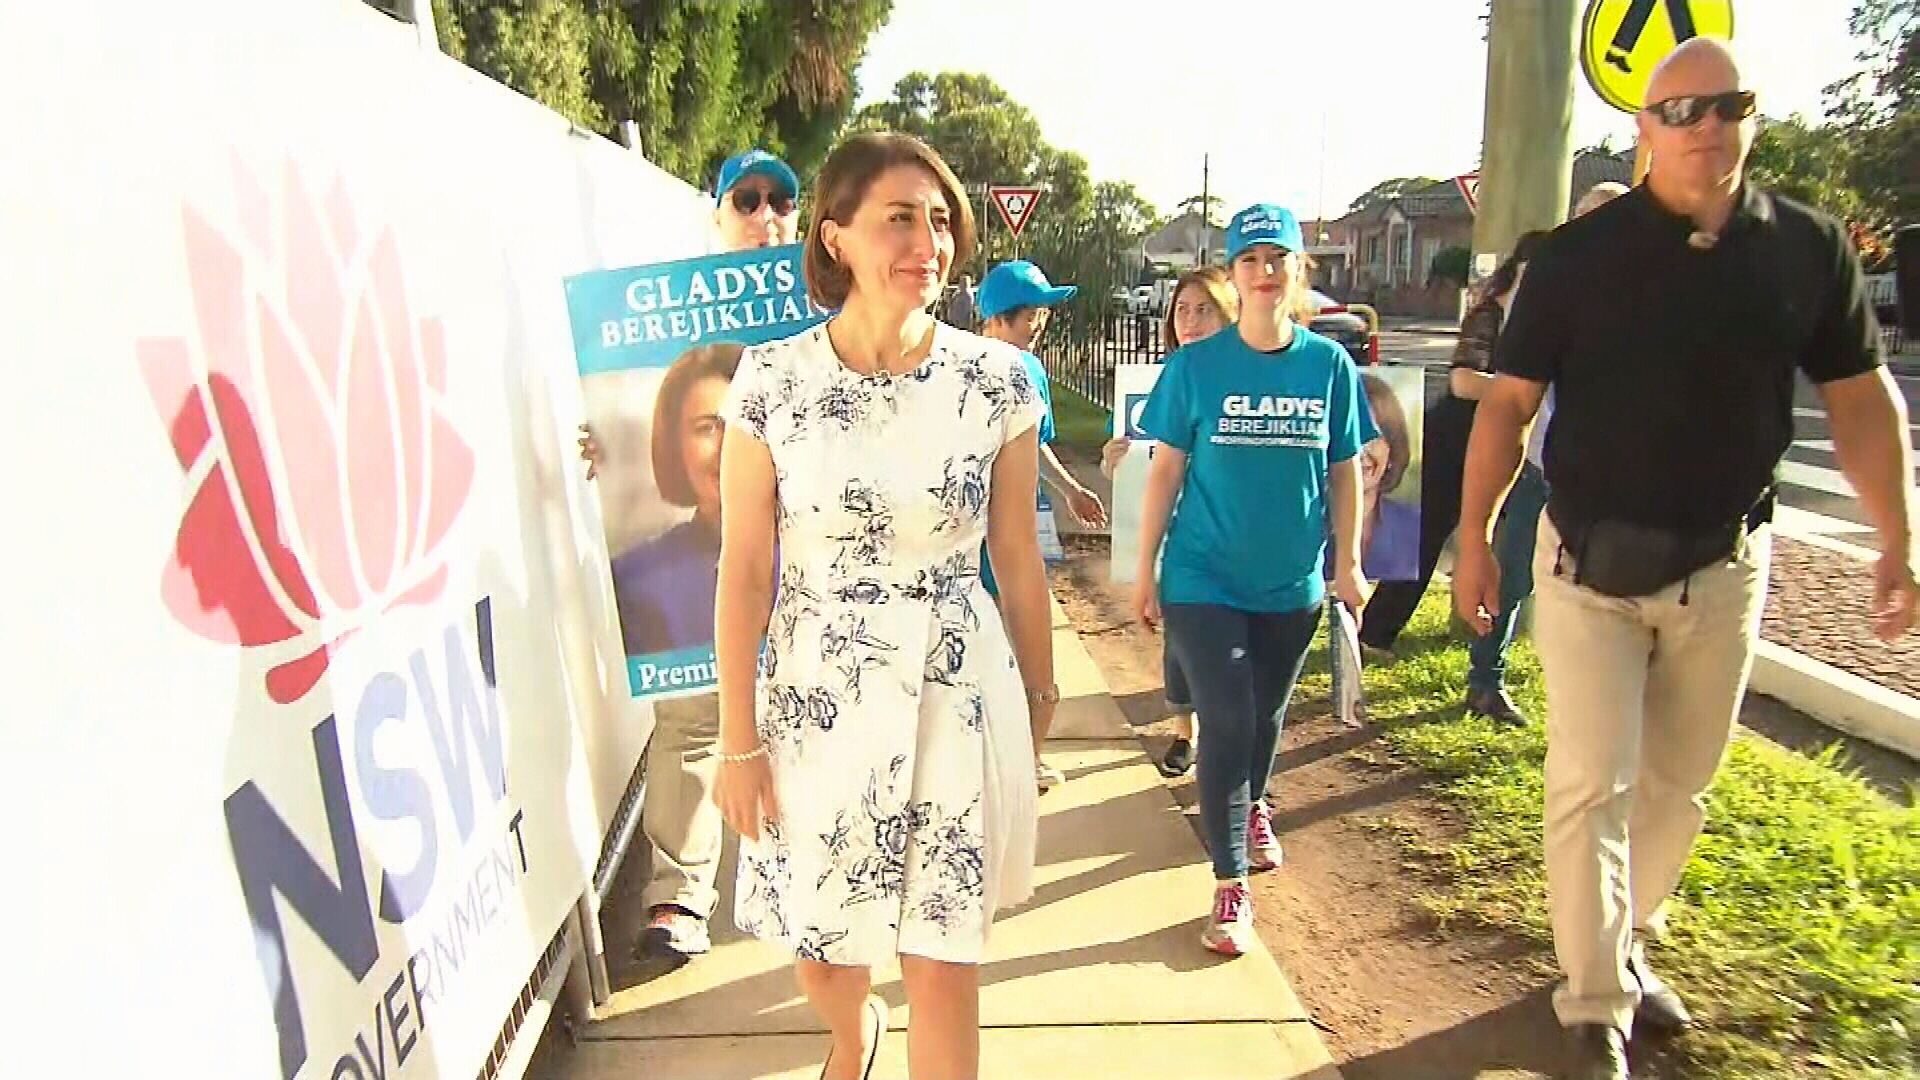 NSW election exit poll shows narrow Coalition win